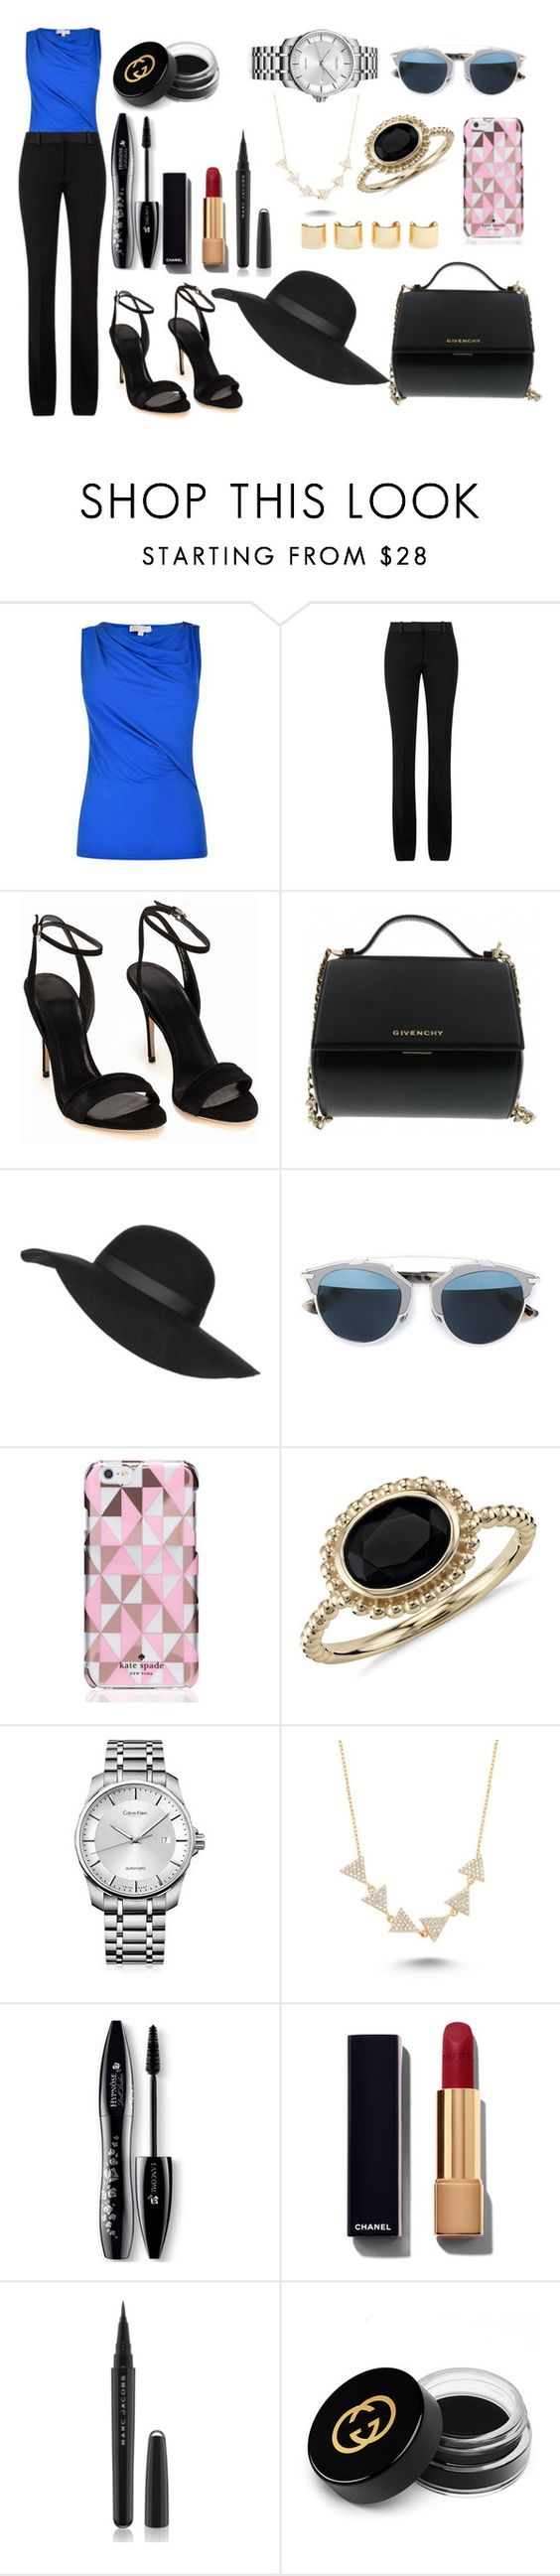 """Sin título #808"" by pinkybunny on Polyvore featuring moda, Victoria Beckham, Givenchy, Topshop, Christian Dior, Kate Spade, Luv Aj, Blue Nile, Calvin Klein y Amorium"